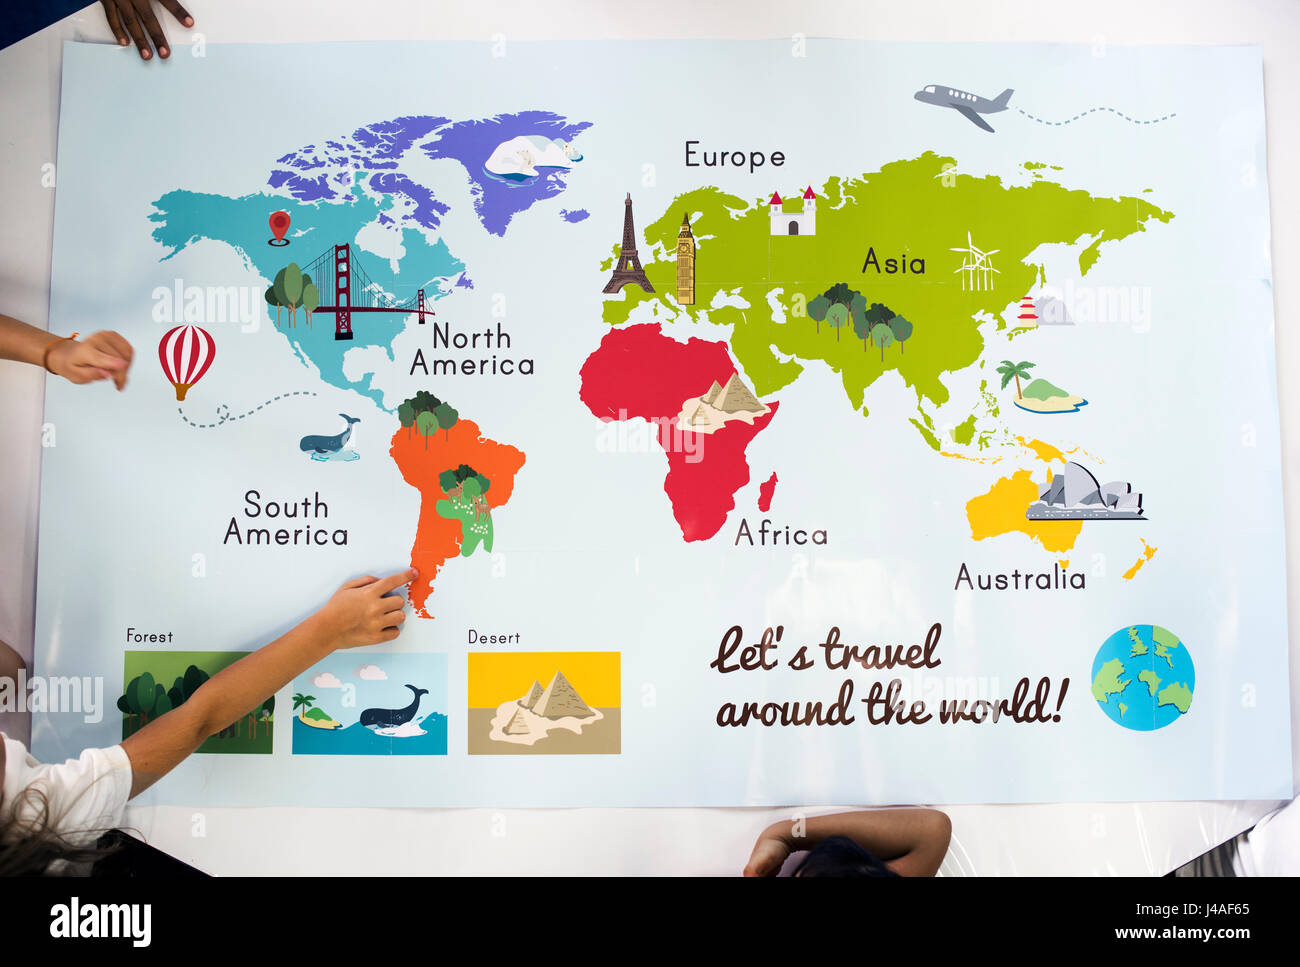 Map showing world continents countries ocean geography stock photo map showing world continents countries ocean geography gumiabroncs Gallery